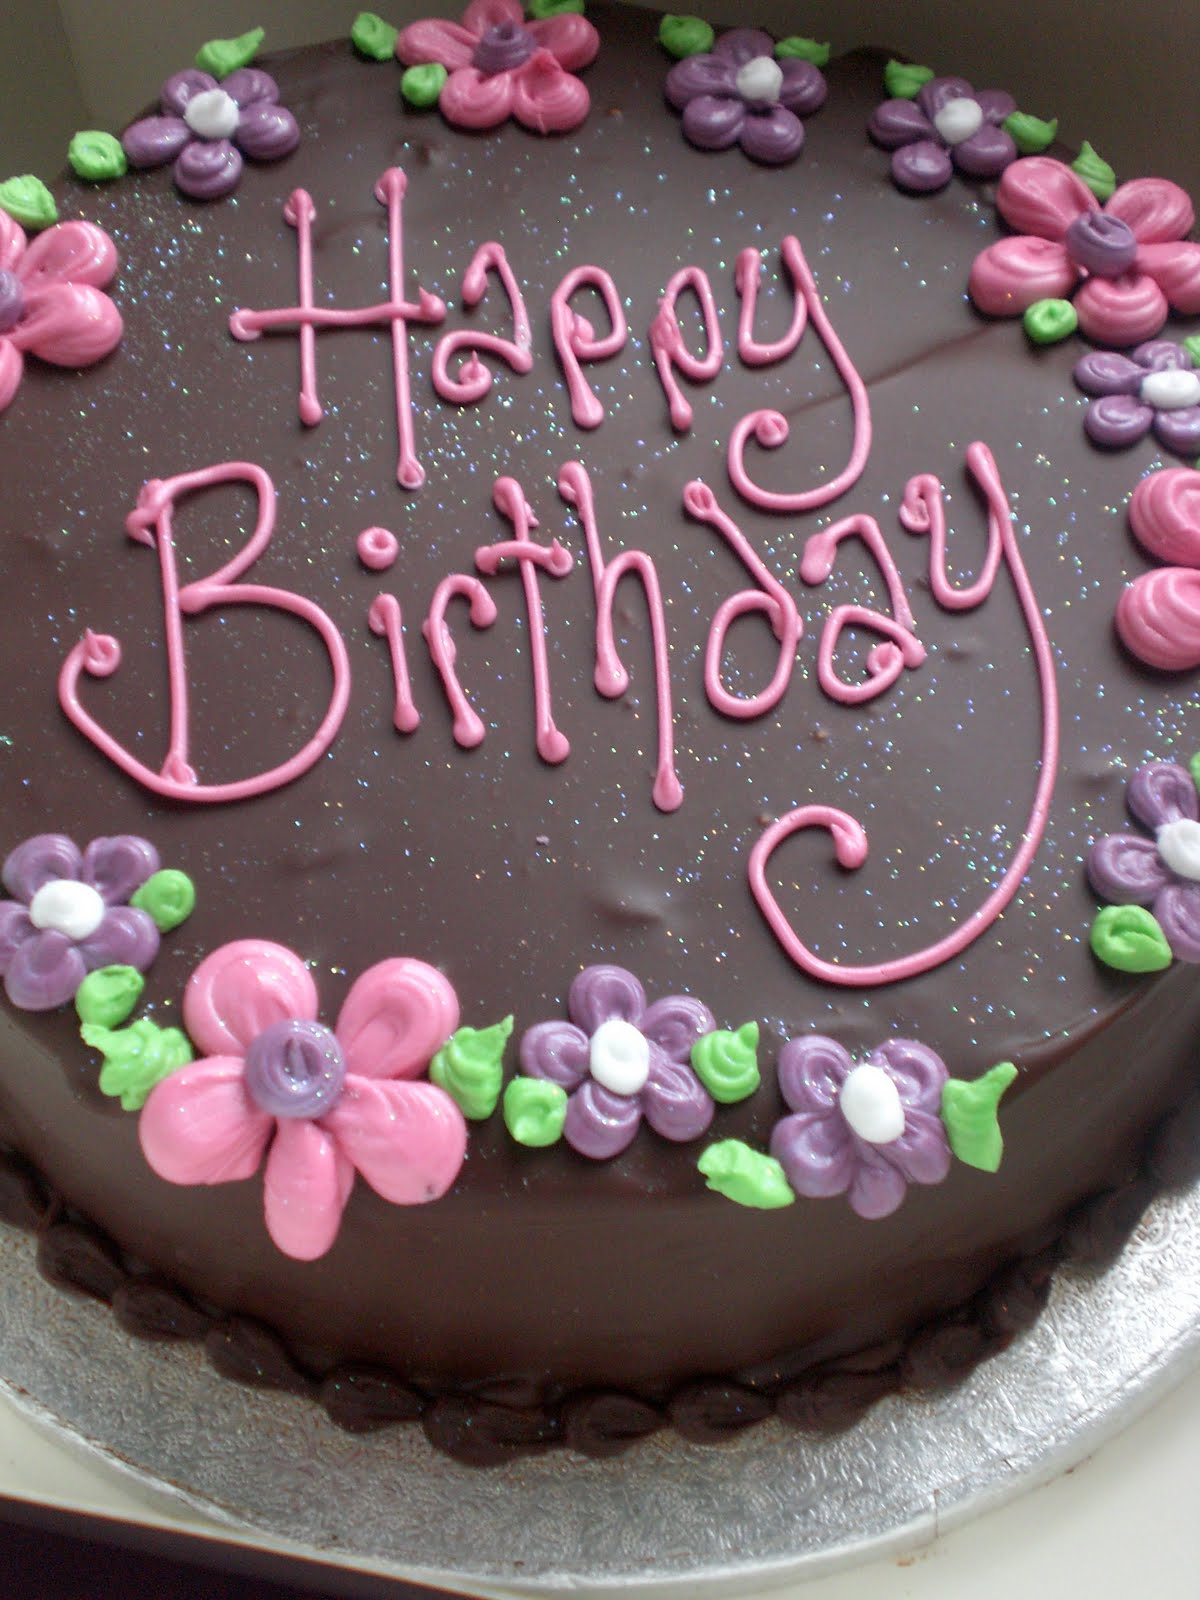 Happy Birthday Wishes Cake Pictues Imags Quotes to You Jesus Sister ...